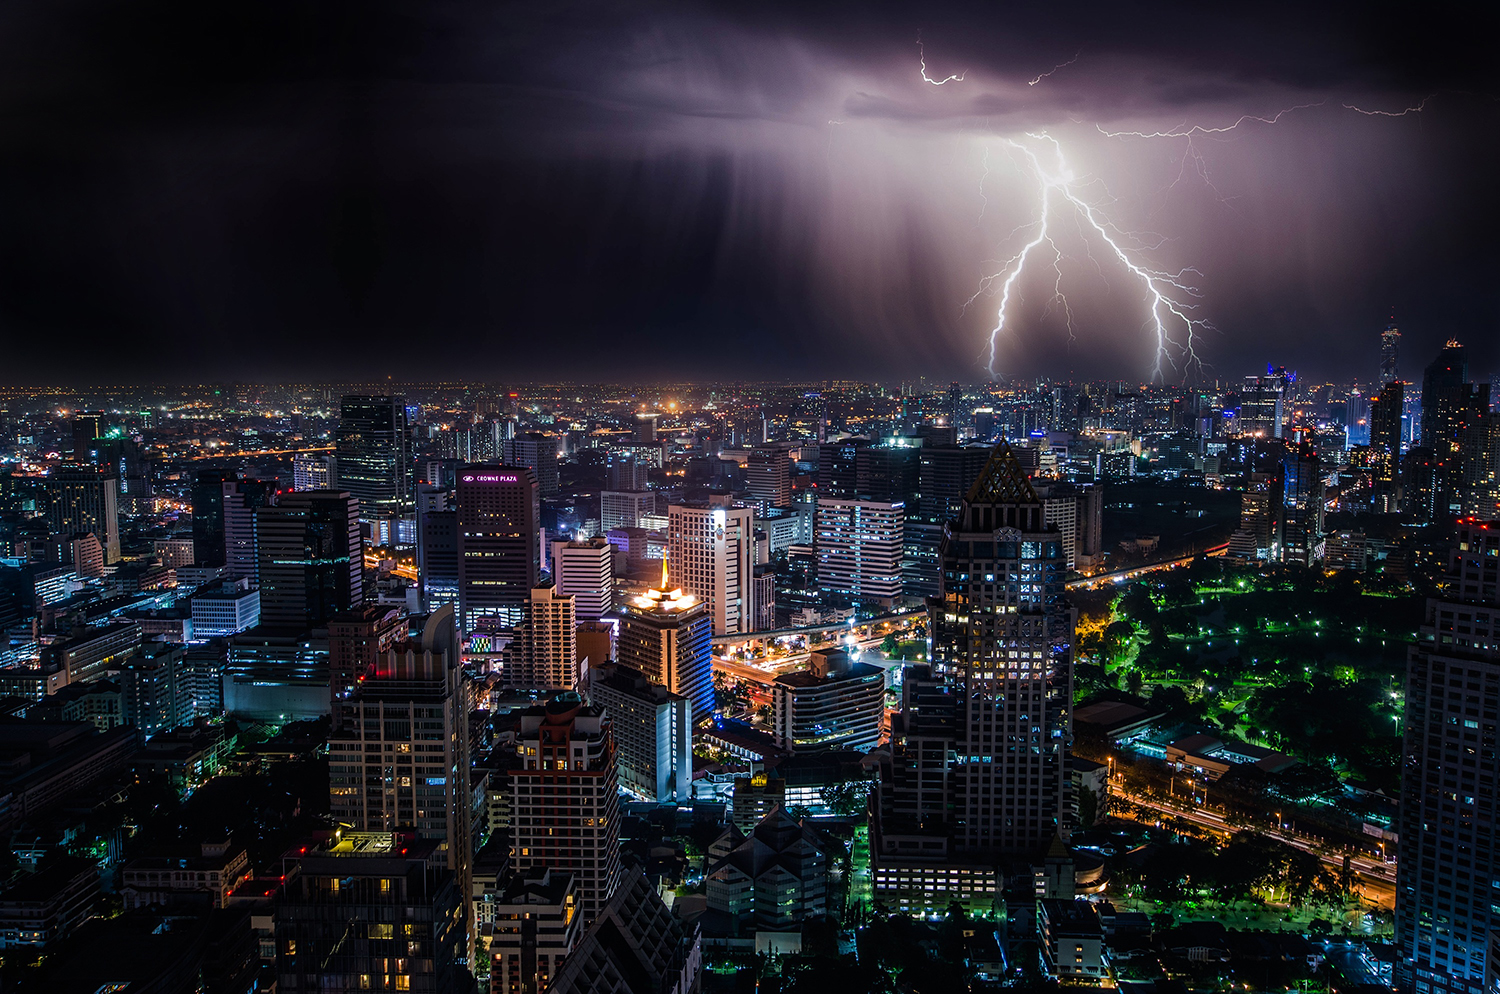 thunder in city at night